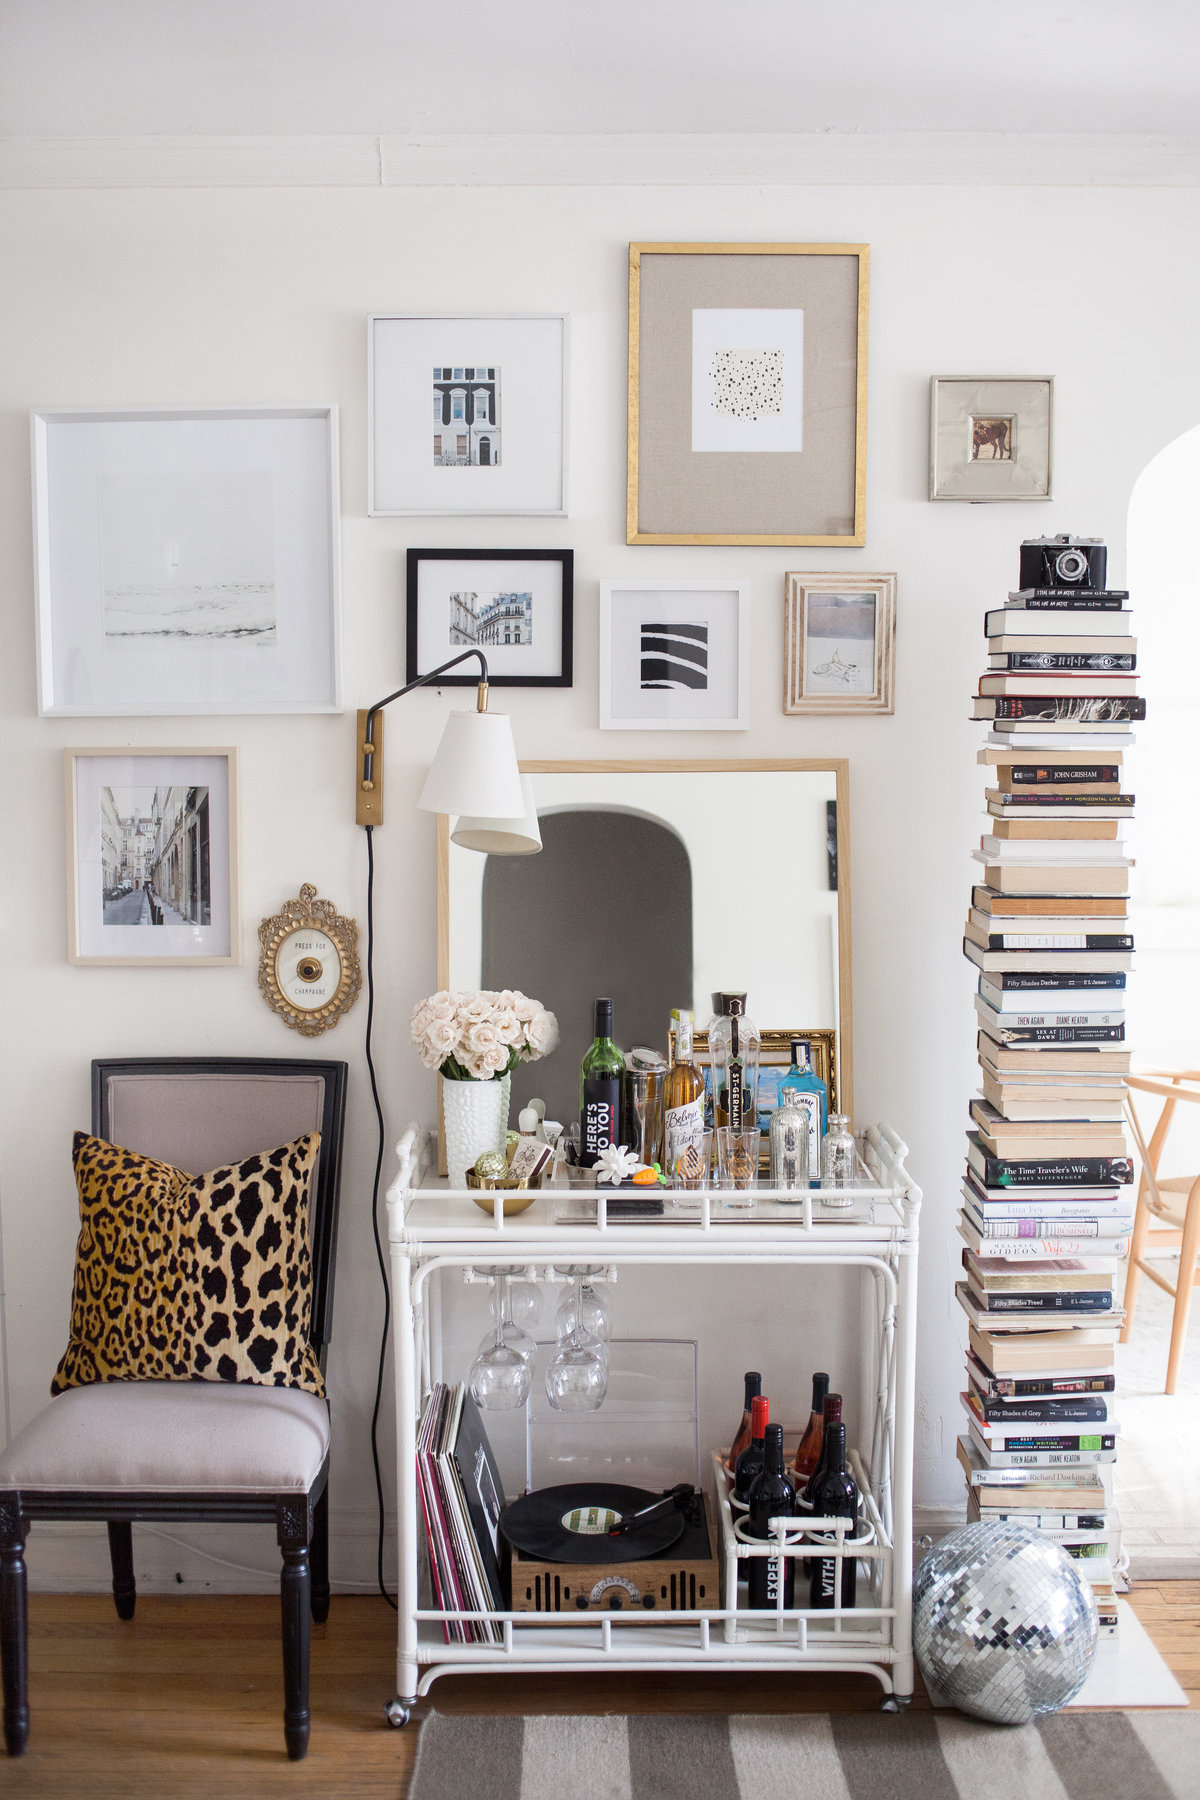 Alaina-Kaczmarksi-Home-Tour-The-Everygirl-56